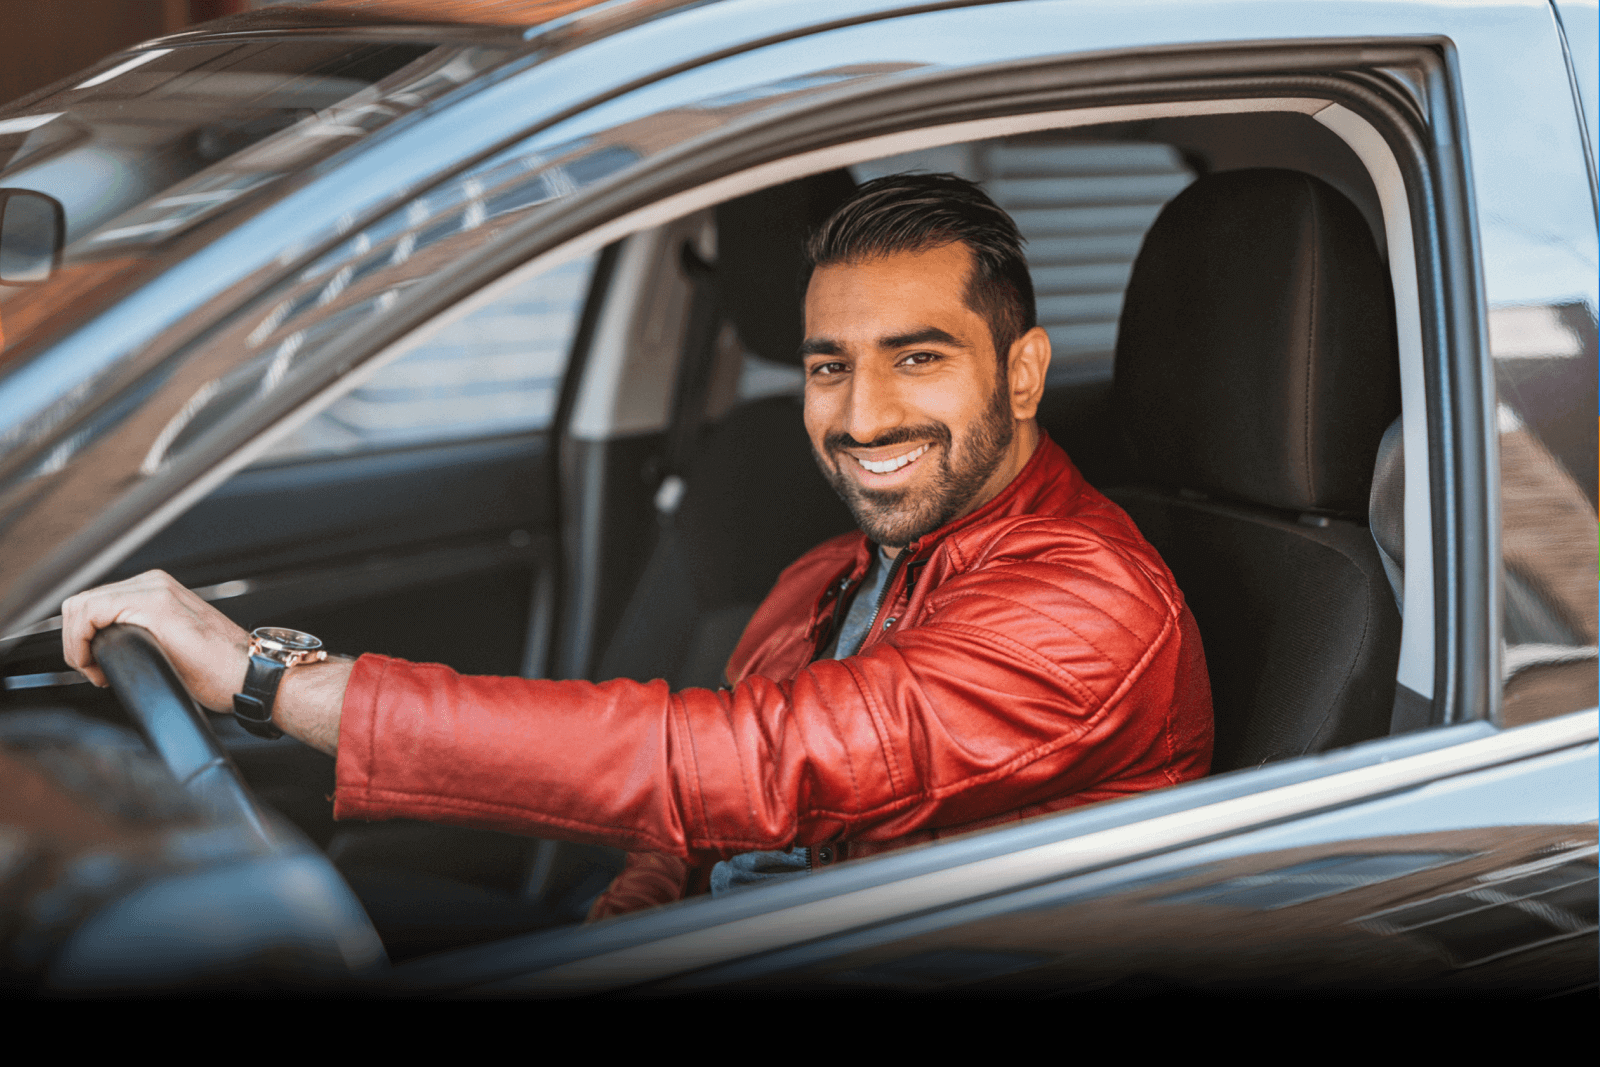 Used Car Buying Stories | Kavish's Story article header